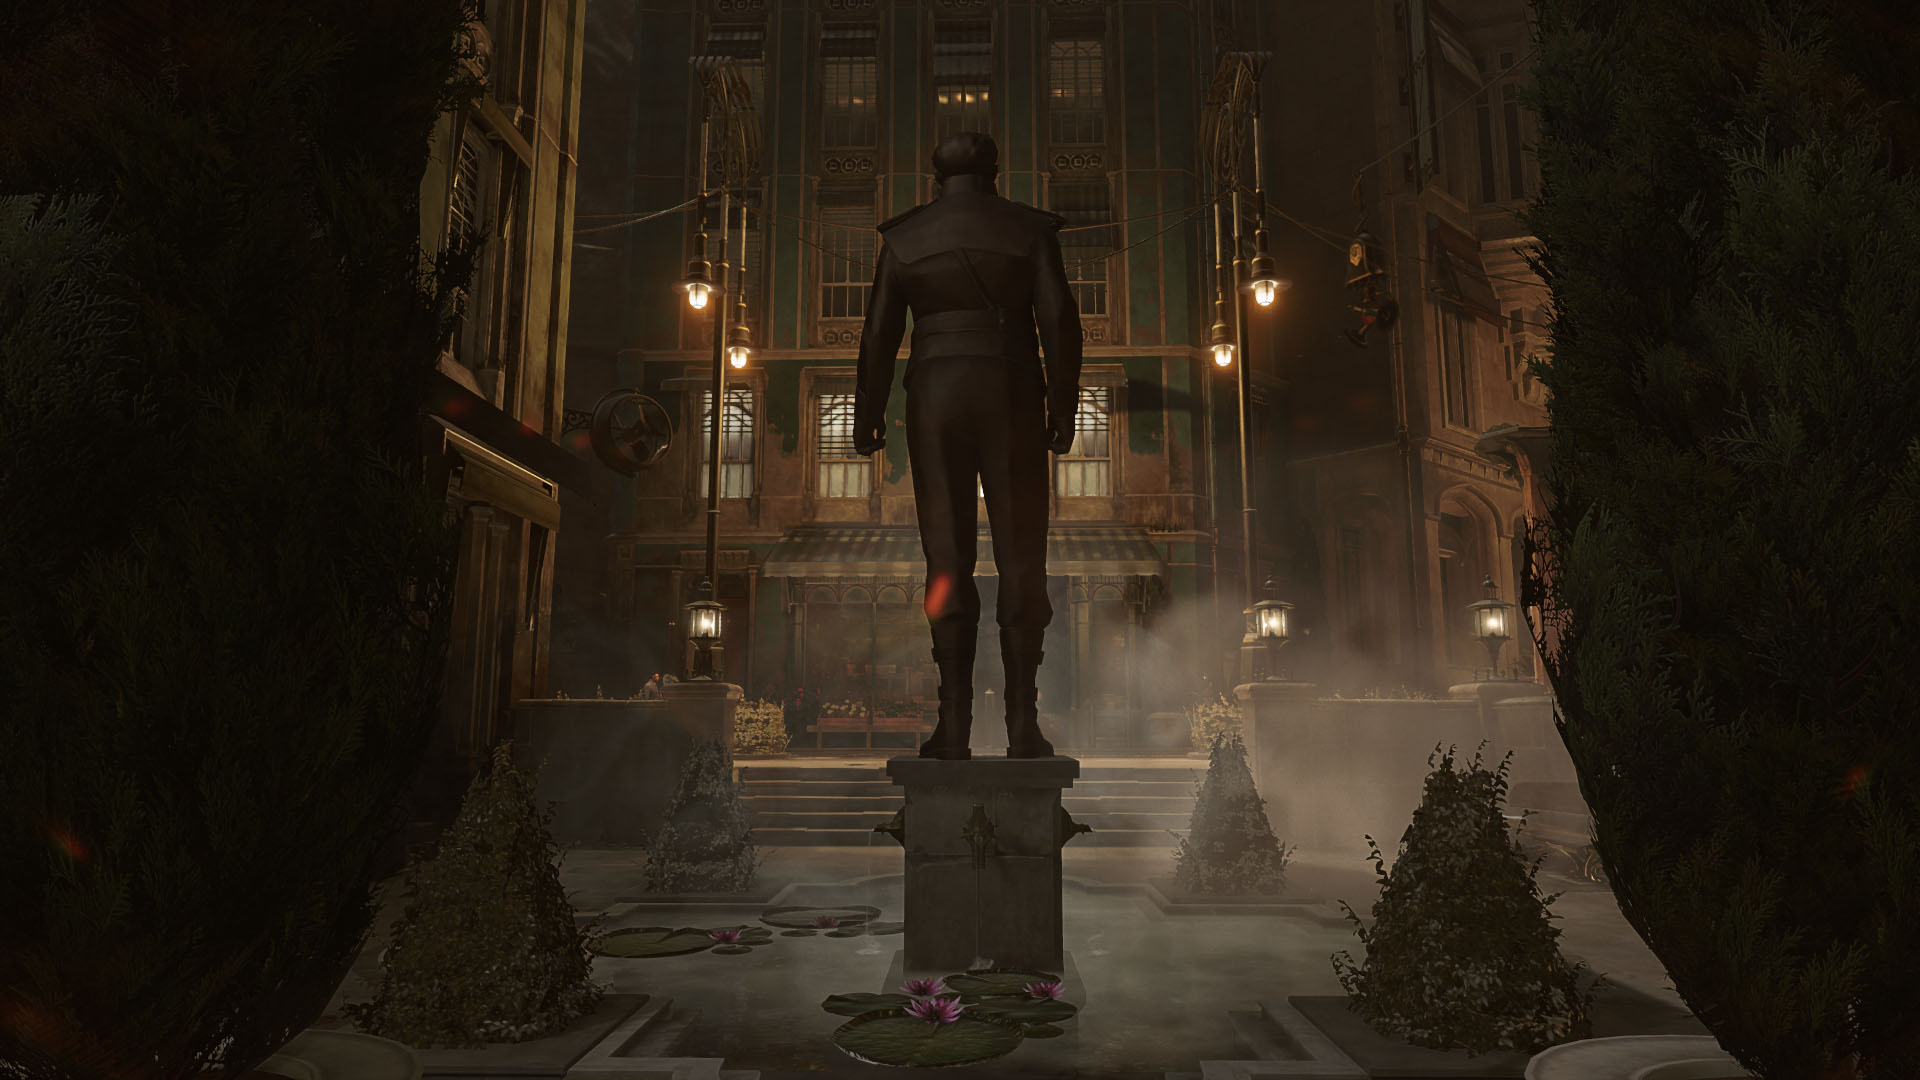 Panoptic Power Dishonored Death Of The Outsider Heterotopias